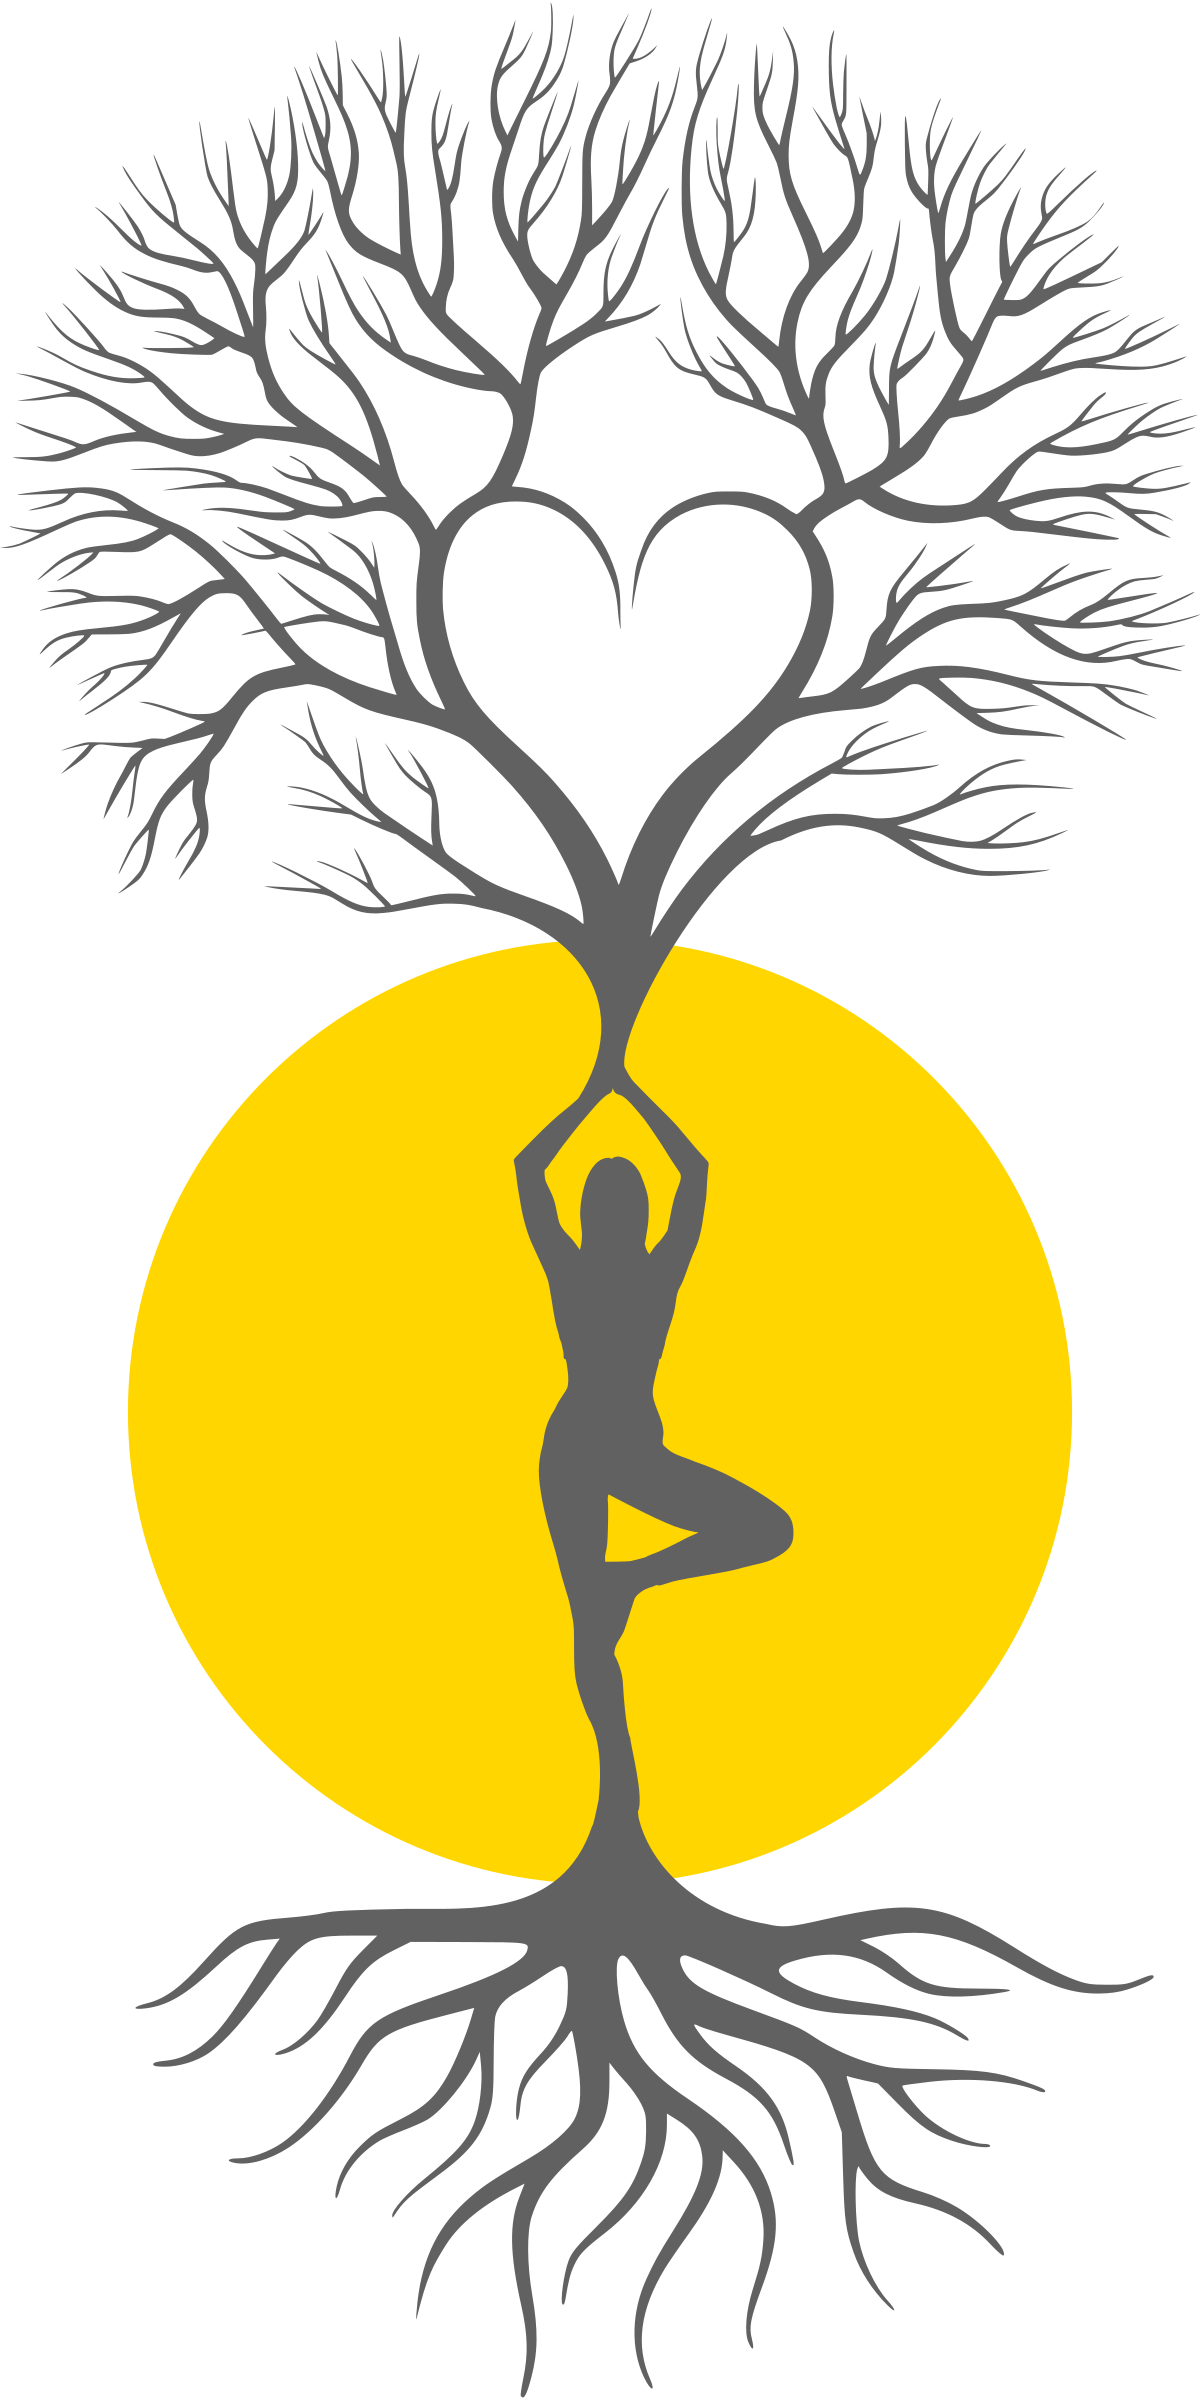 Yoga Tree Silhouette Vector Clipart Image Free Stock Photo Public Domain Photo Cc0 Images